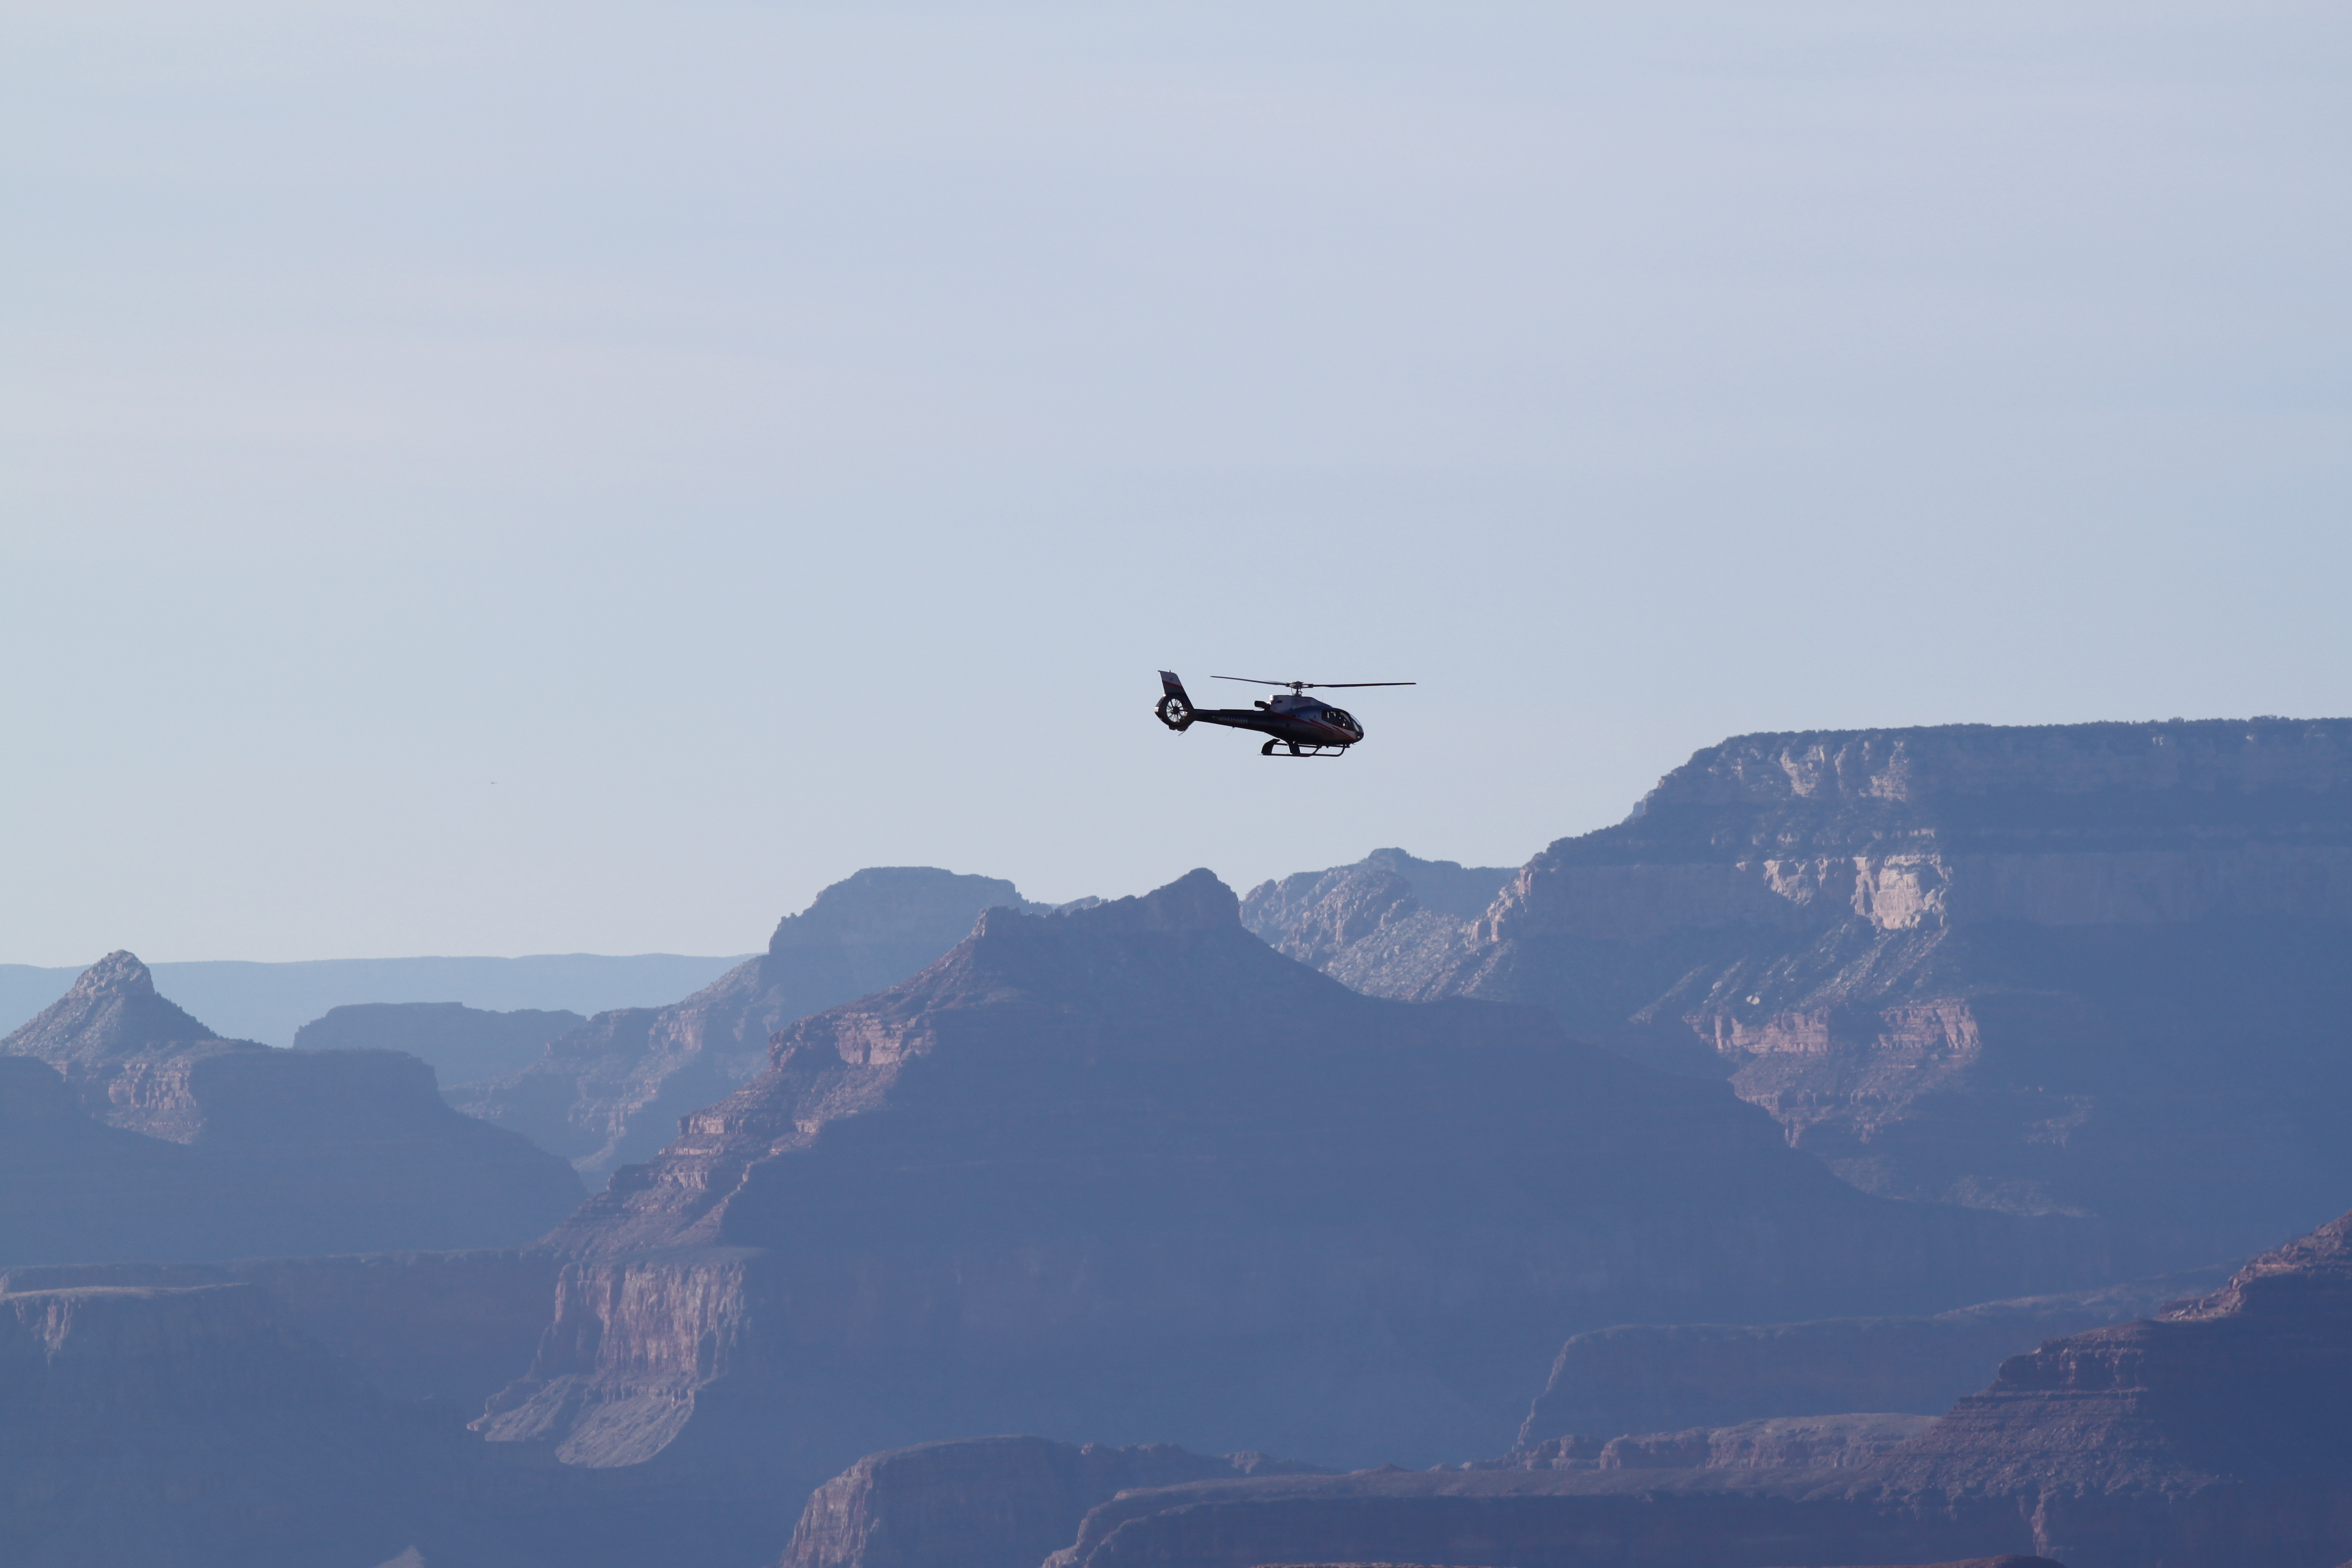 Tourists experience the wonder of Grand Canyon National Park from the vantage of a helicopter.